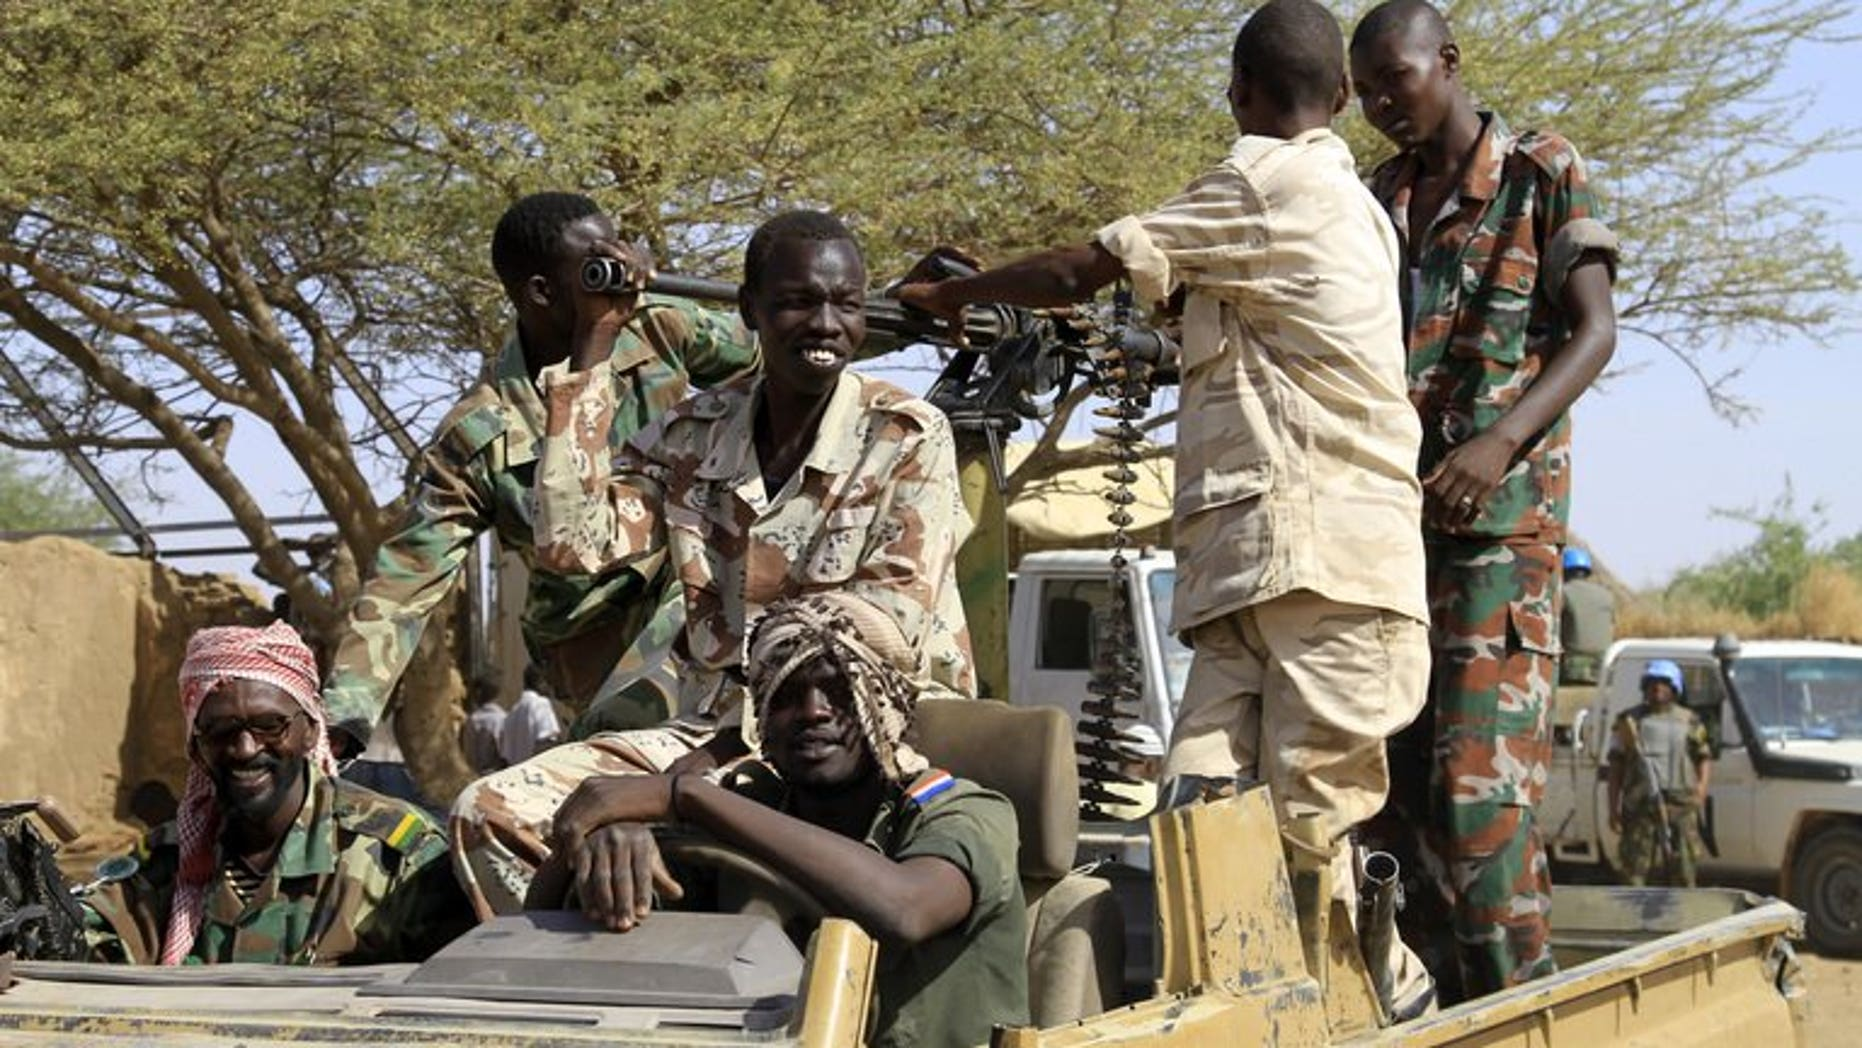 Sudanese soldiers keep watch in the Shangil Tobaya area for displaced people in North Darfur state, on June 18, 2013. A new outbreak of tribal violence in Darfur region has killed nine people, official media said, in fighting that has added to worsening insecurity in the region.